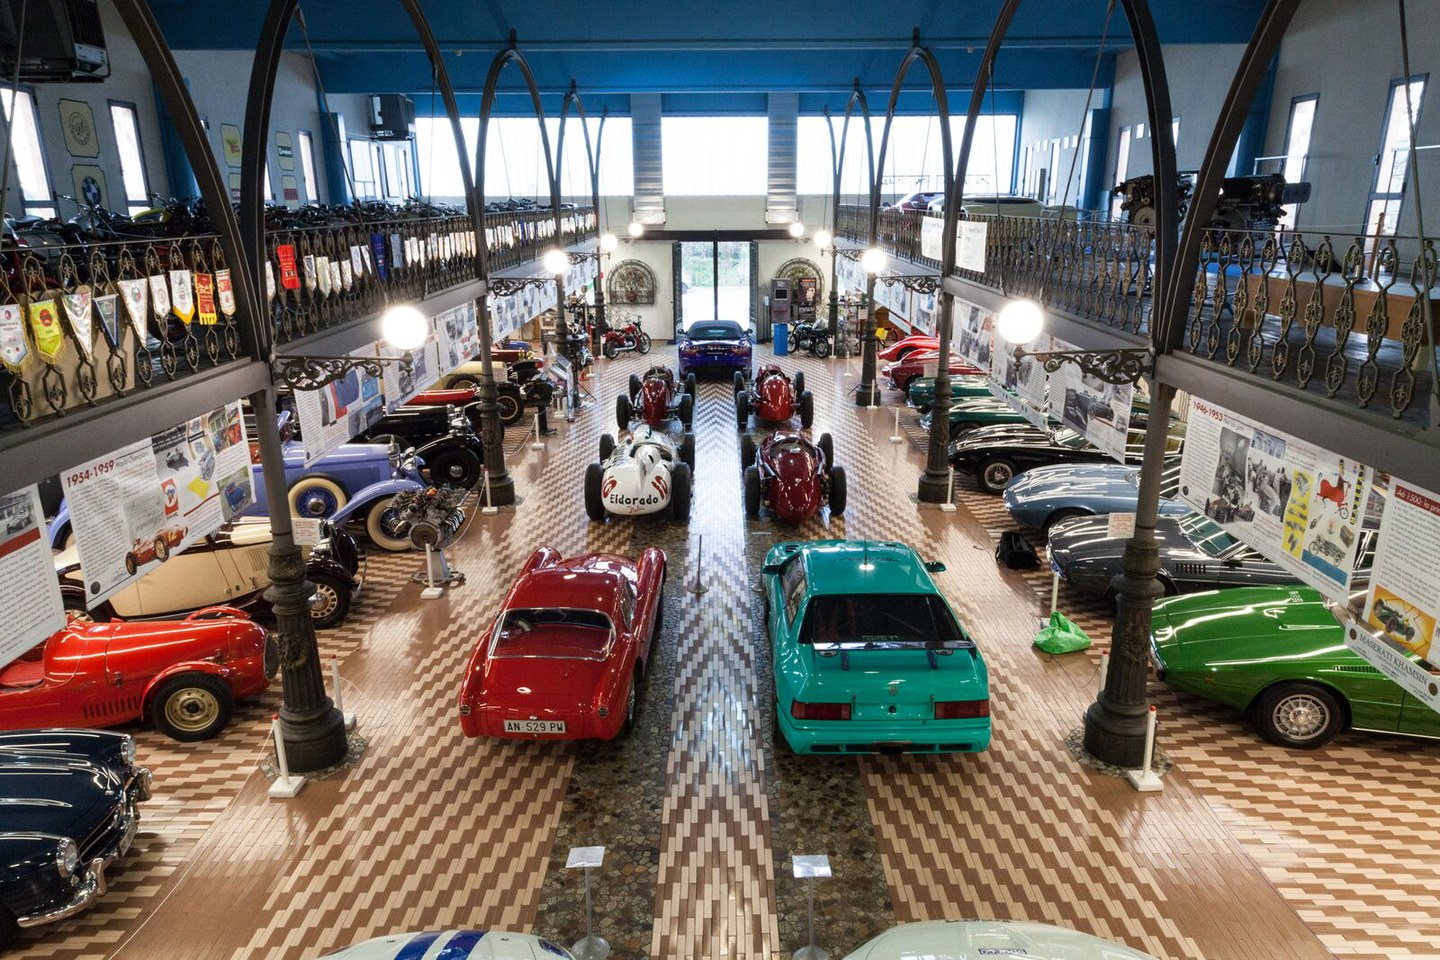 Umberto Panini historic cars and motorcycles collection